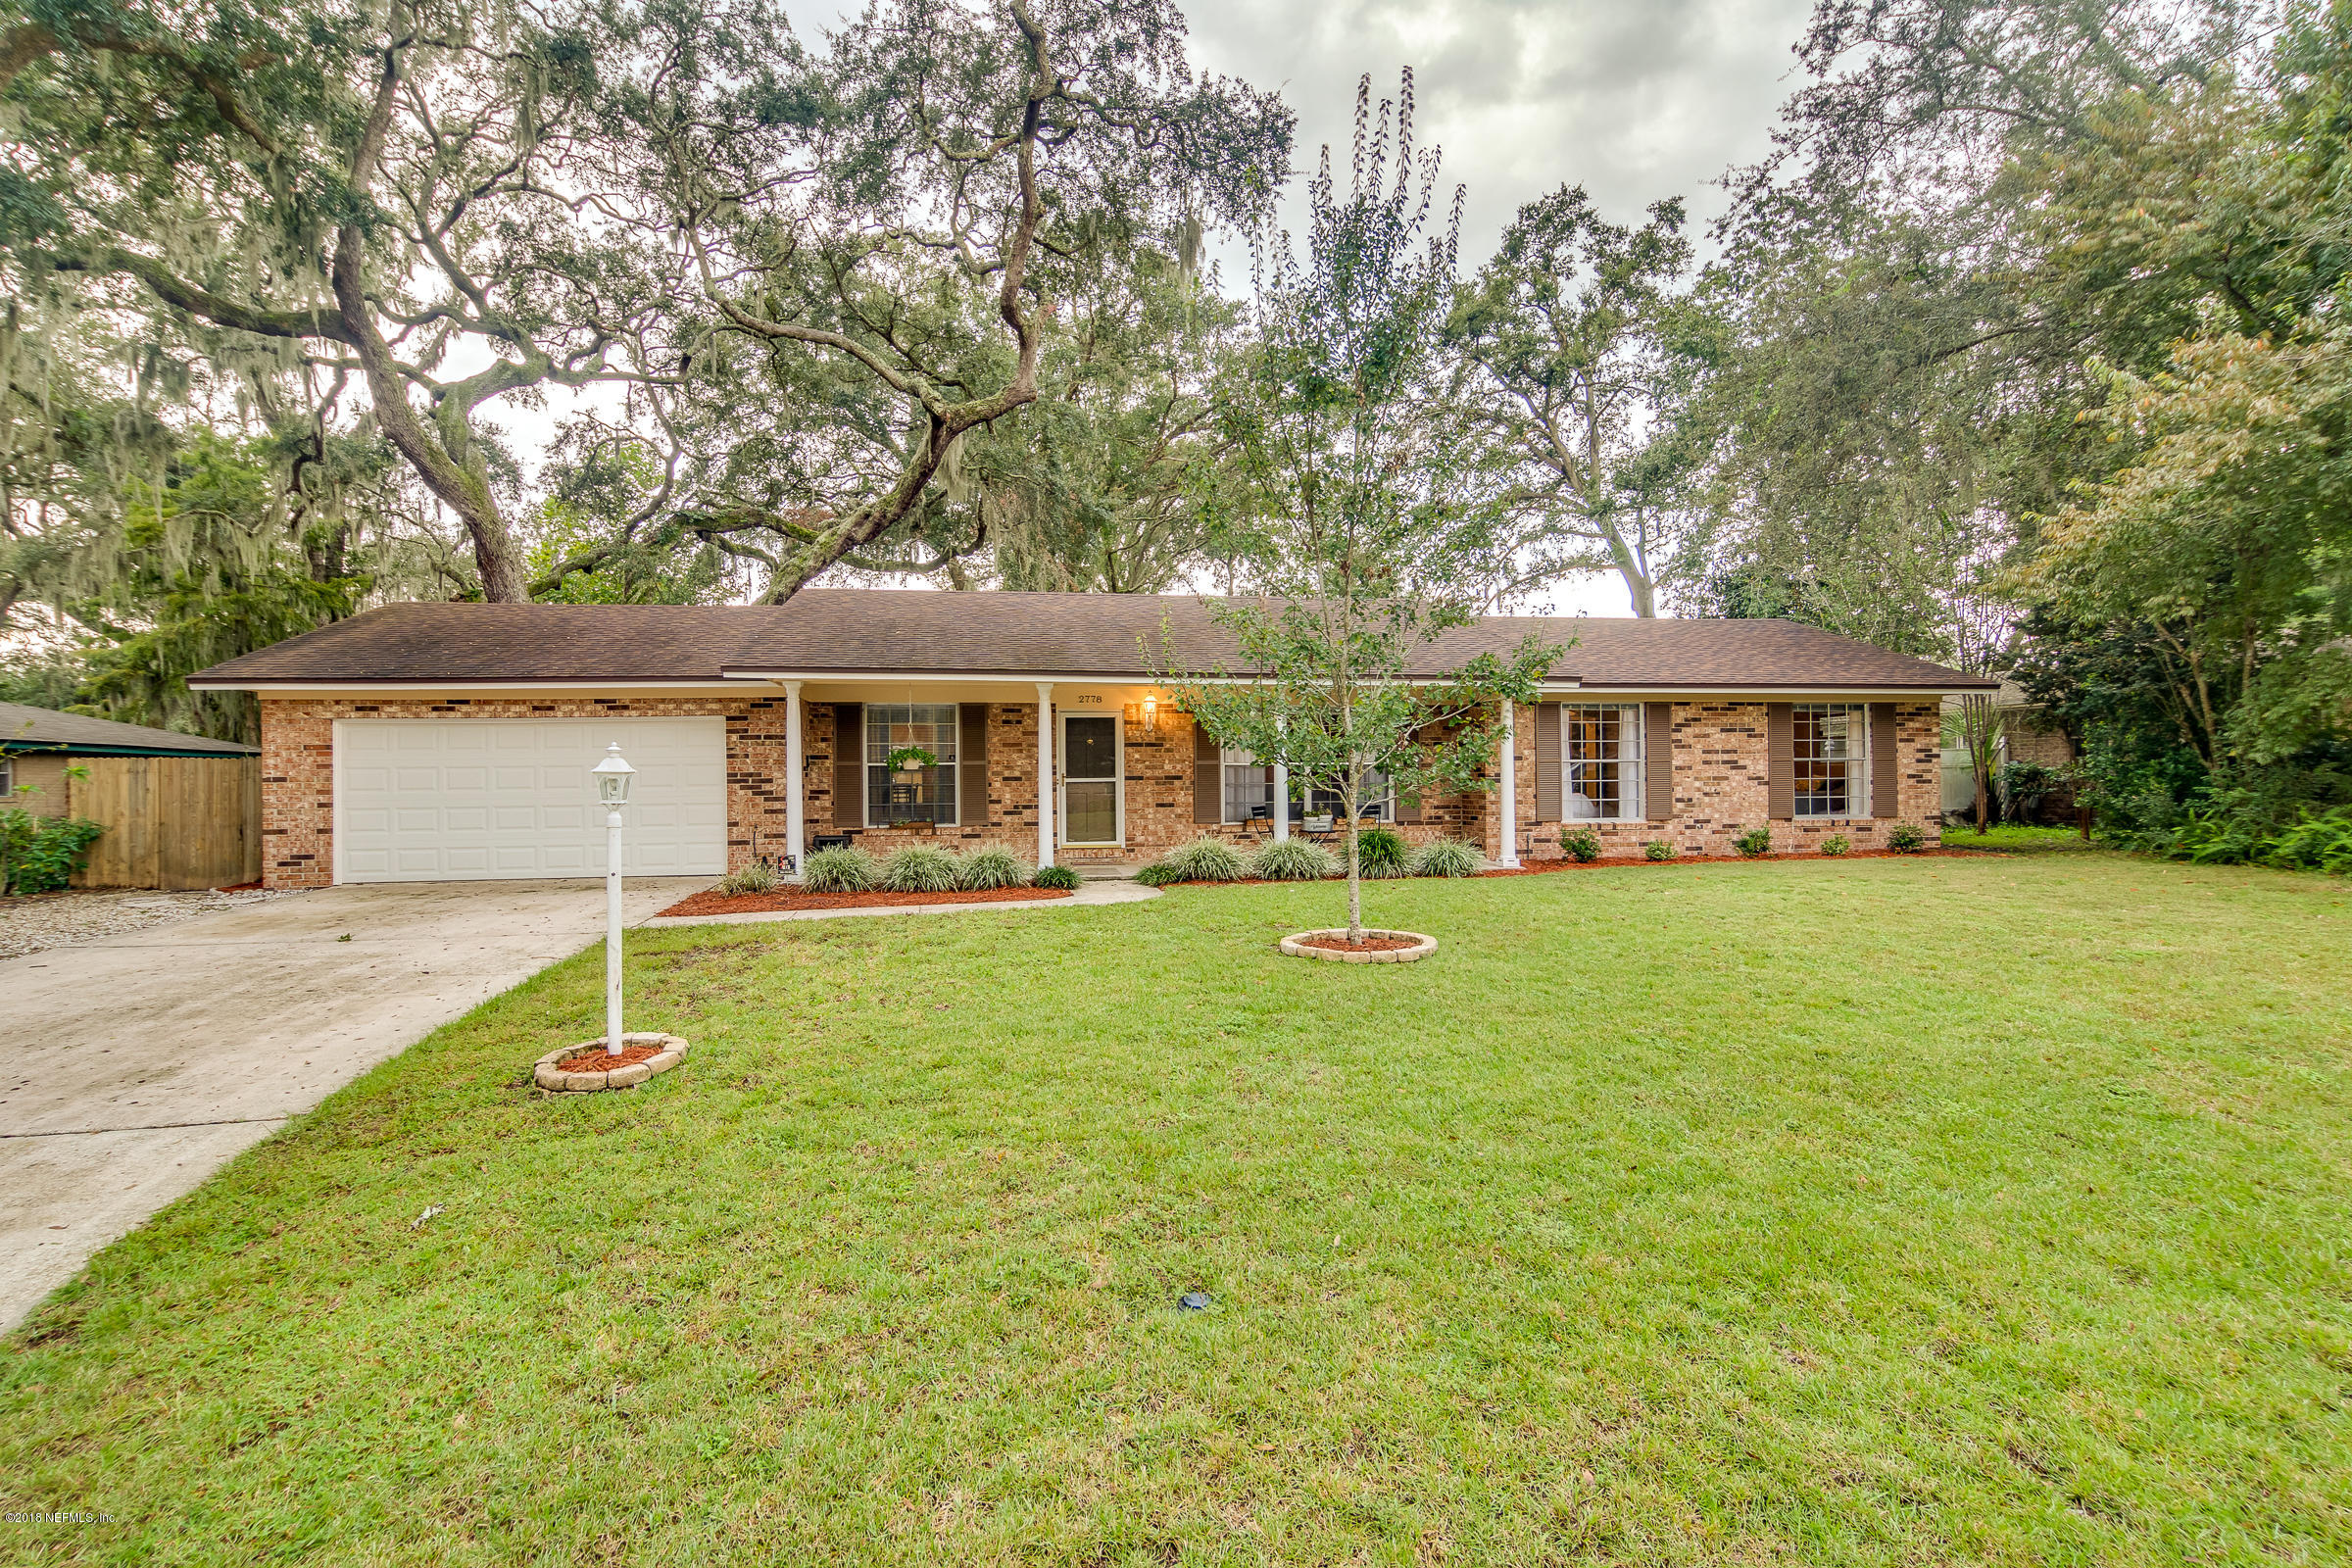 2778 PACES FERRY, ORANGE PARK, FLORIDA 32073, 4 Bedrooms Bedrooms, ,2 BathroomsBathrooms,Residential - single family,For sale,PACES FERRY,962274